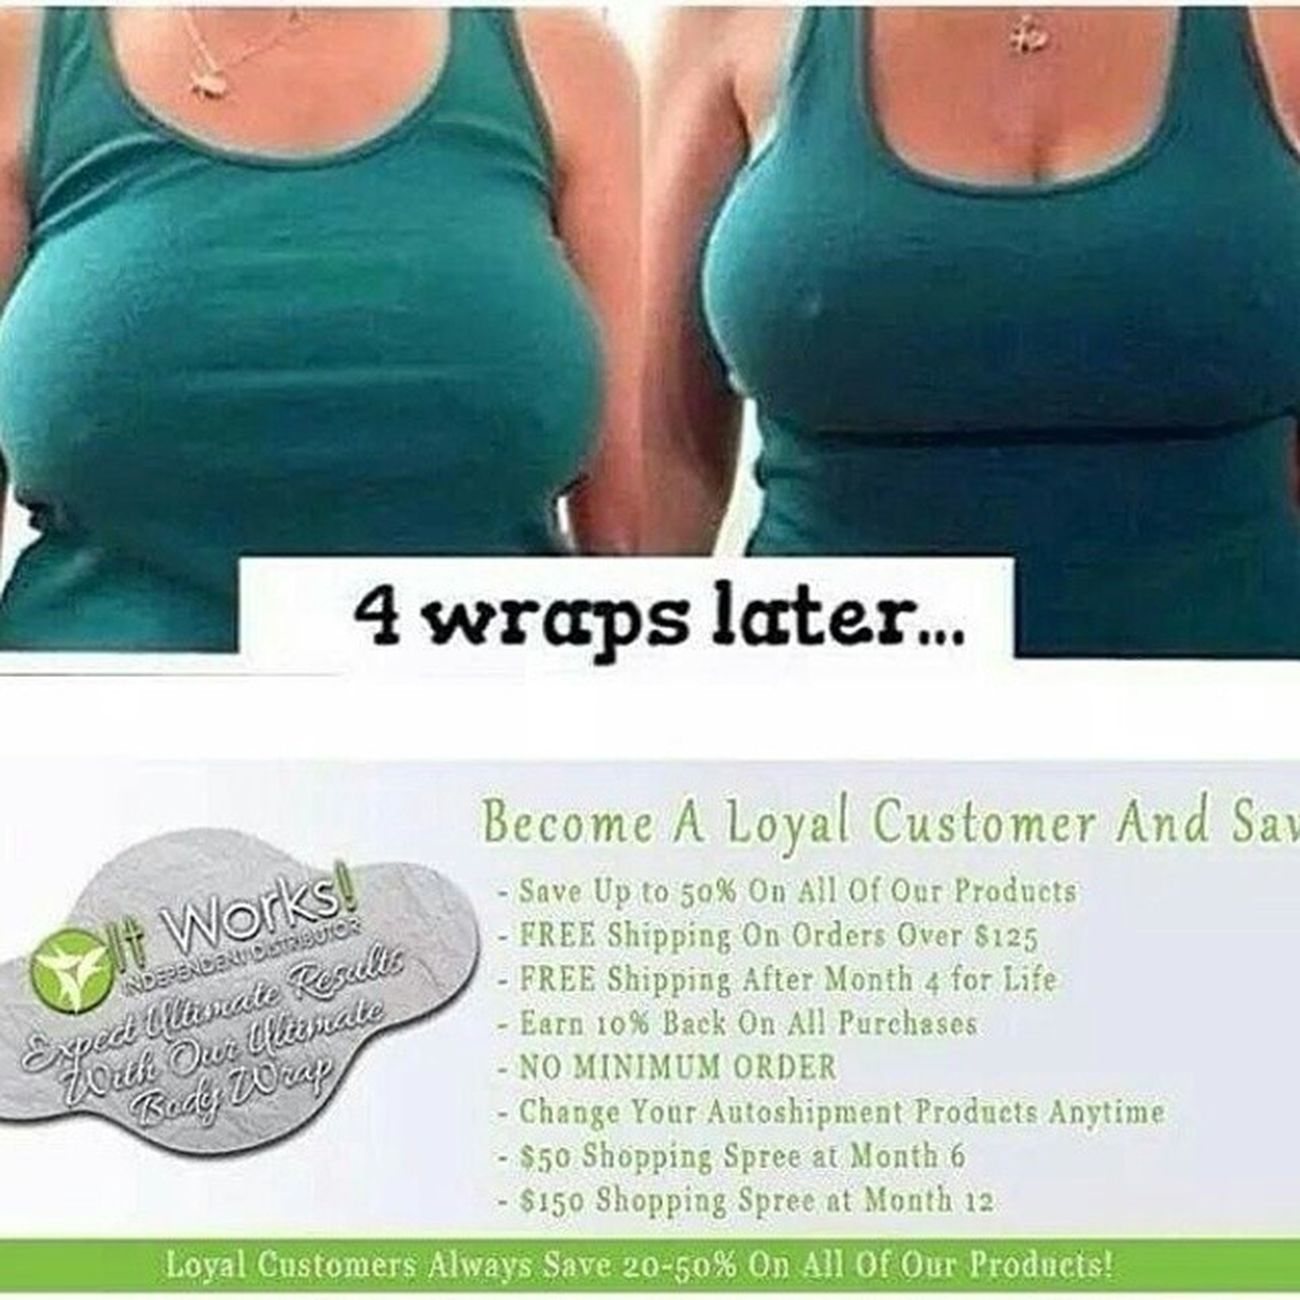 ItWorks Wraps truly help! No surgery! All natural! For a better and a healthier you! Message me! Itworks Crazywrapthing Crazywrap Didntexpectresults sag lift tightened toned firm tone tighten nomoresag perky natural wrap wraps itworkswraps thatcrazywrapthing lc loyalcustomer booblift savemoney wraptreatment